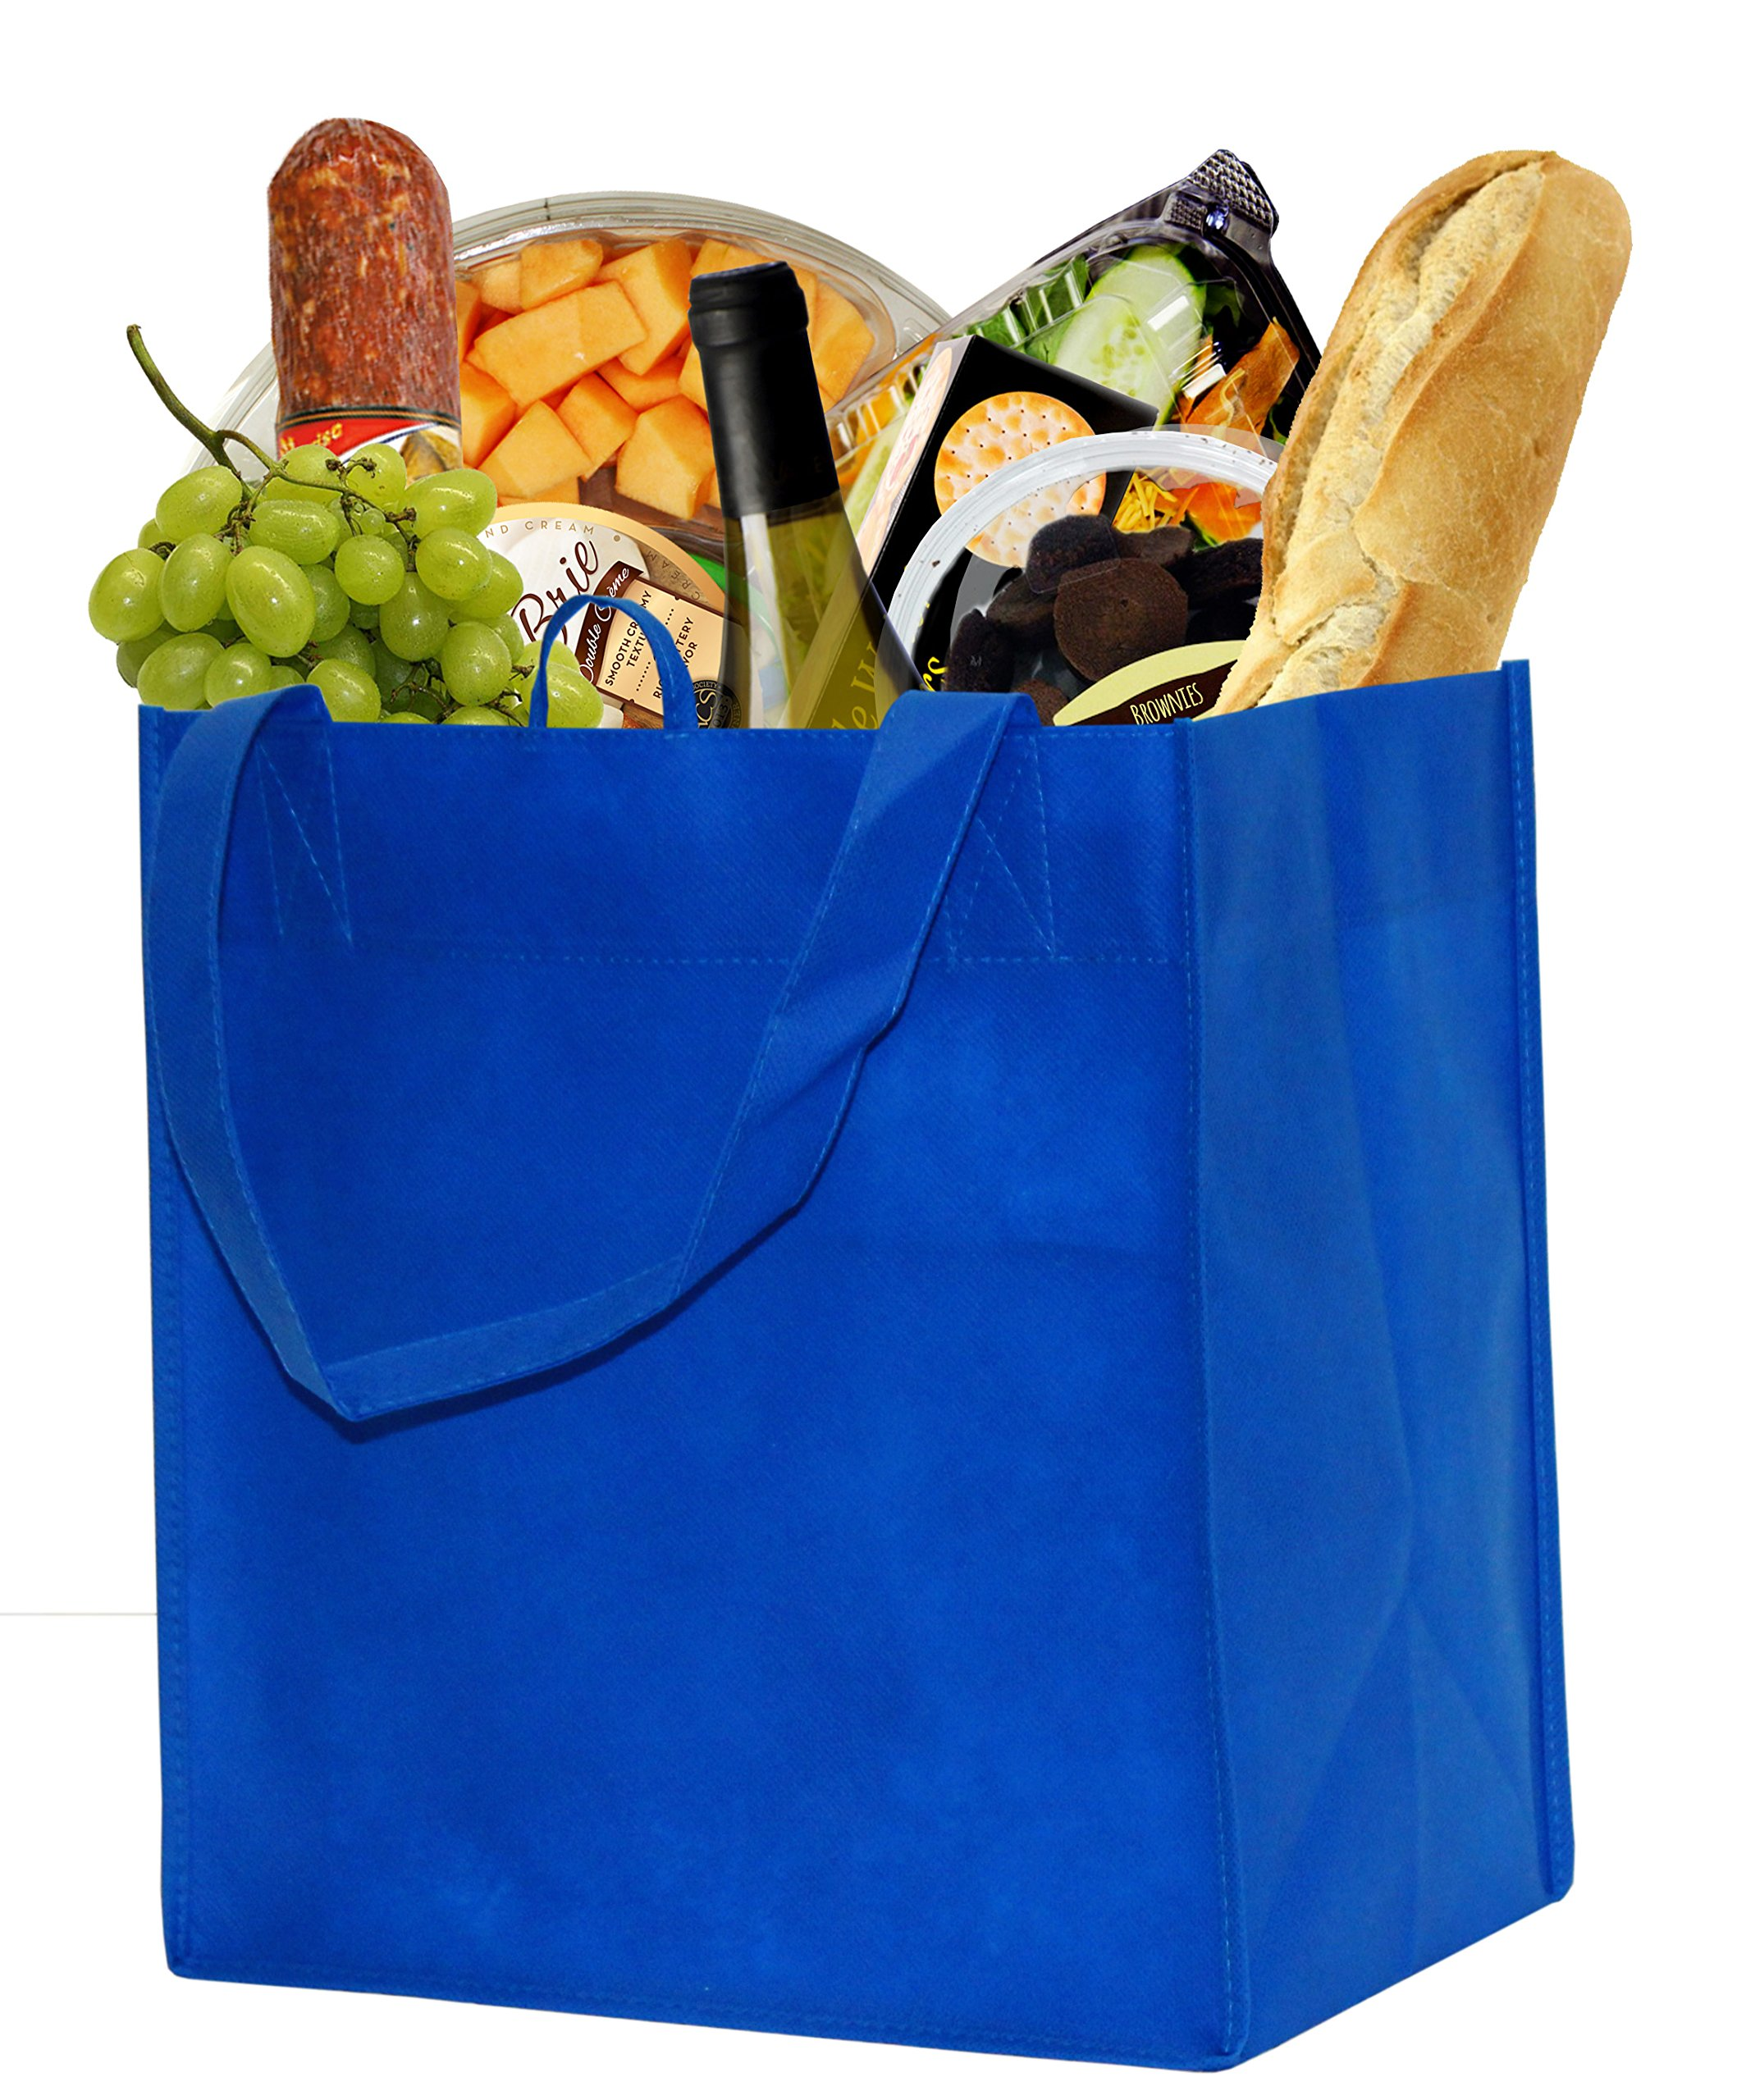 Earthwise Reusable Grocery Bags Shopping Totes Eco Friendly (10 Piece Pack) by Earthwise (Image #4)